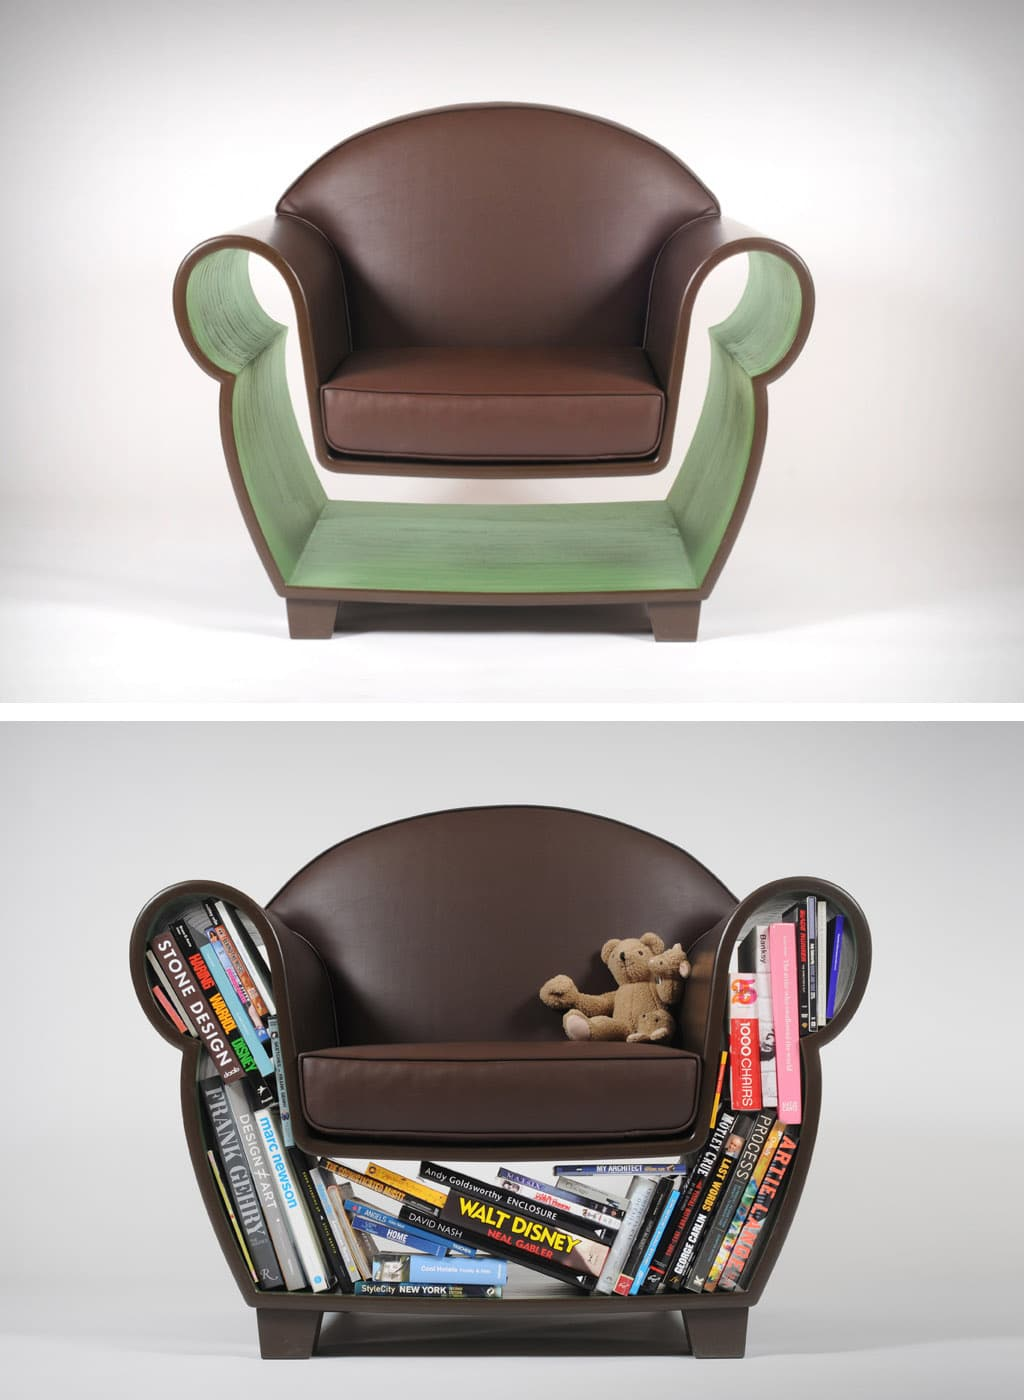 hollow-chair-design-creative-furniture